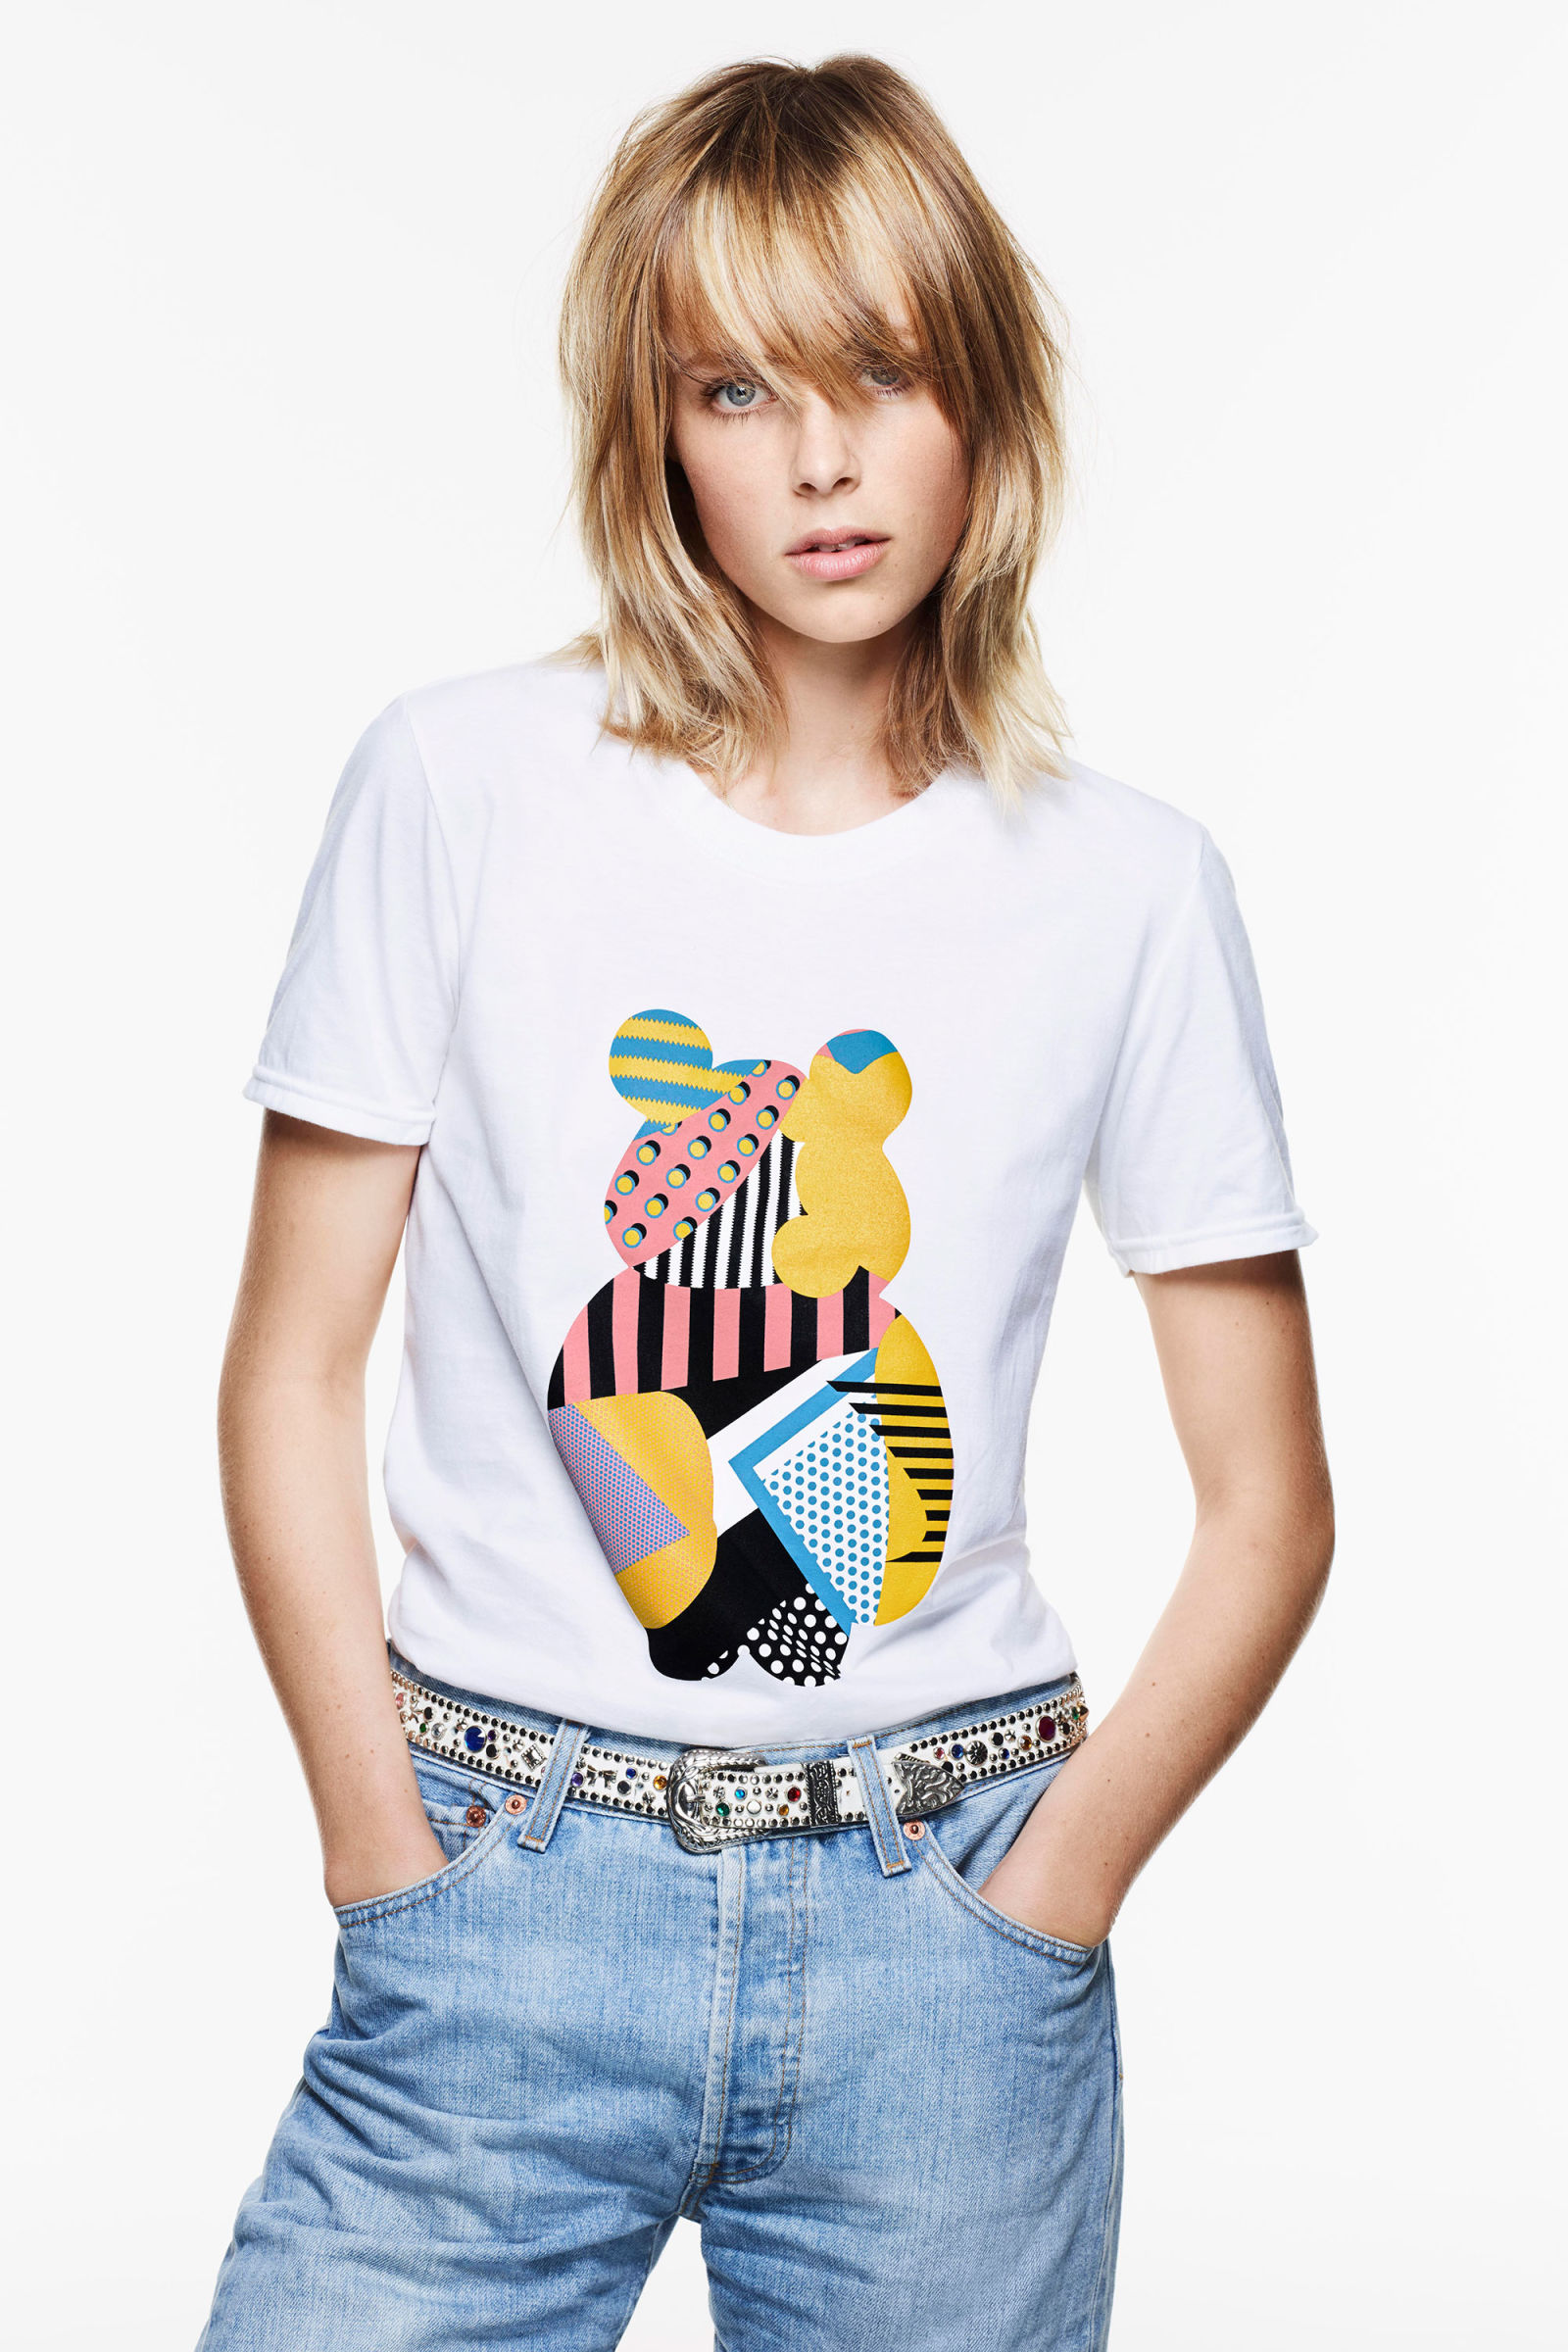 1476884002-syn-hbz-1476869862-edie-campbell-helps-launch-bbc-children-in-need-t-shirt